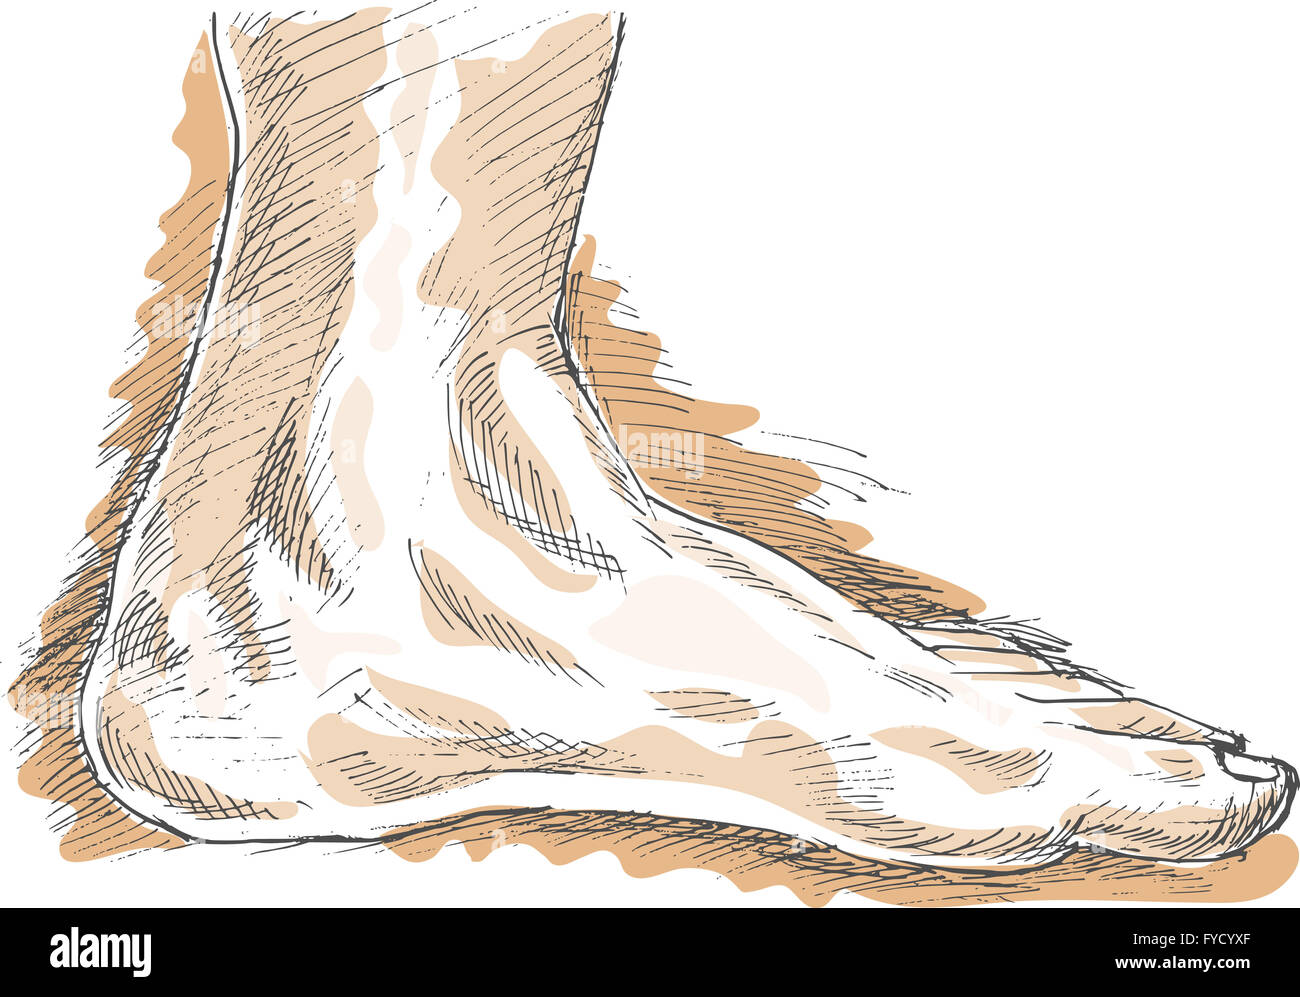 Human Left Foot viewed from side - Stock Image